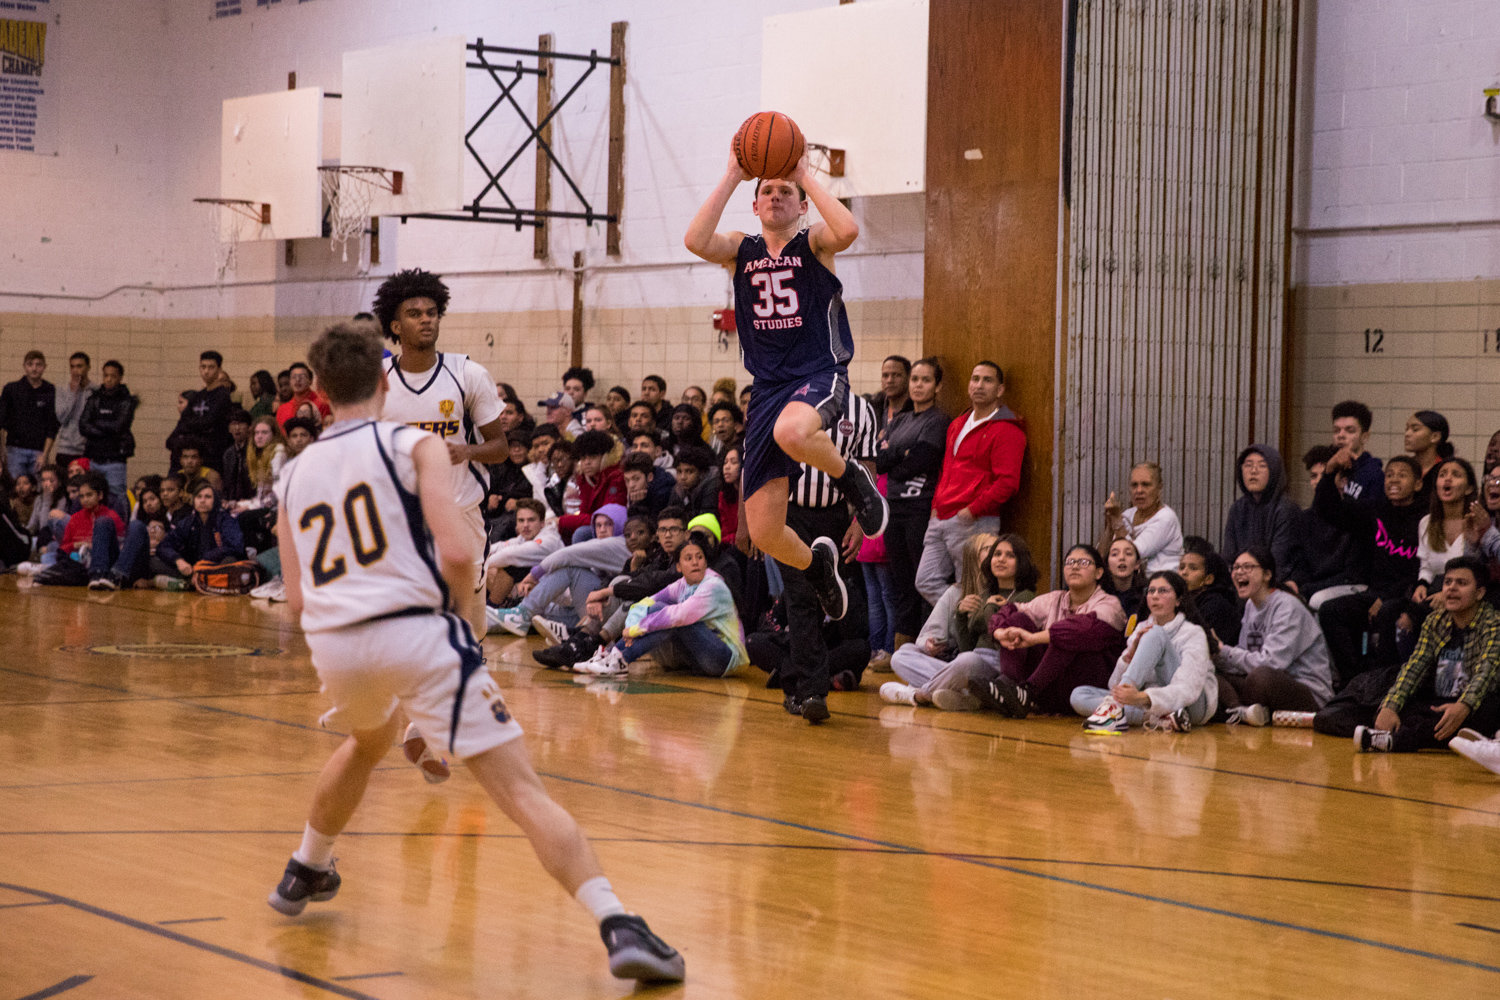 American Studies' sharpshooter Troy McLean finished with 37 points, but it wasn't enough to carry the Senators, who dropped a three-point decision to Riverdale/Kingsbridge Academy last week.